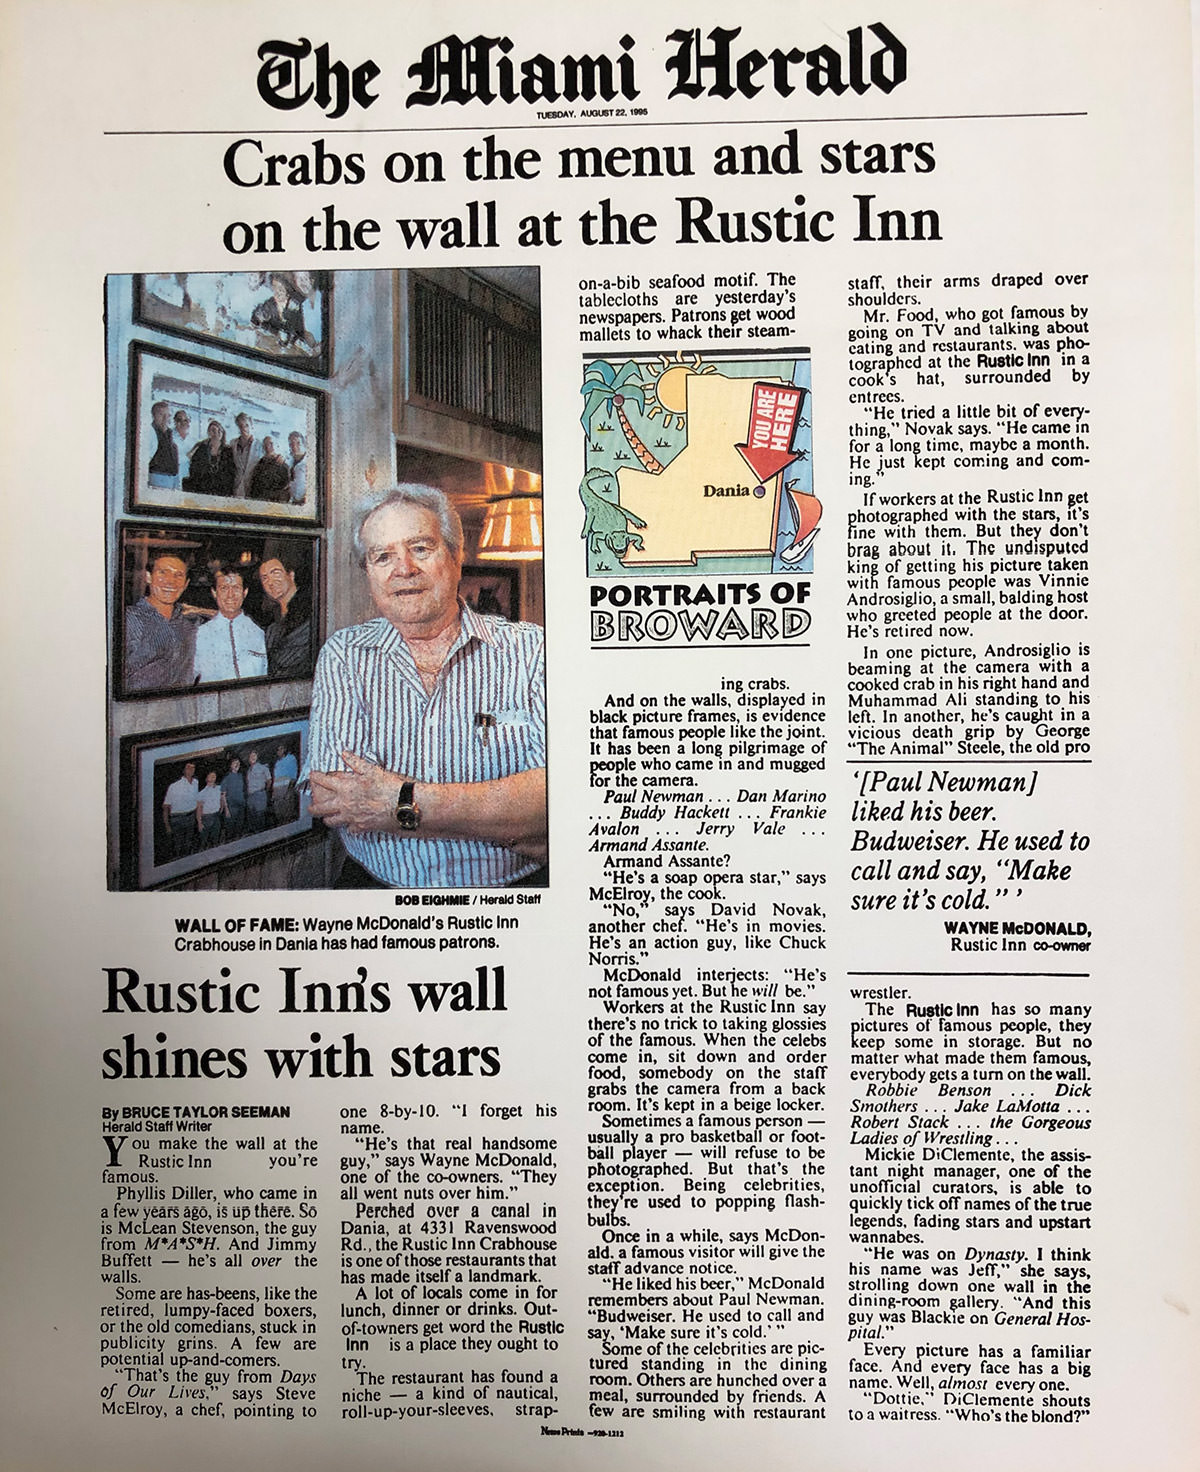 The Miami Herald - Crab on the menu and starts on the wall at the Rustic Inn